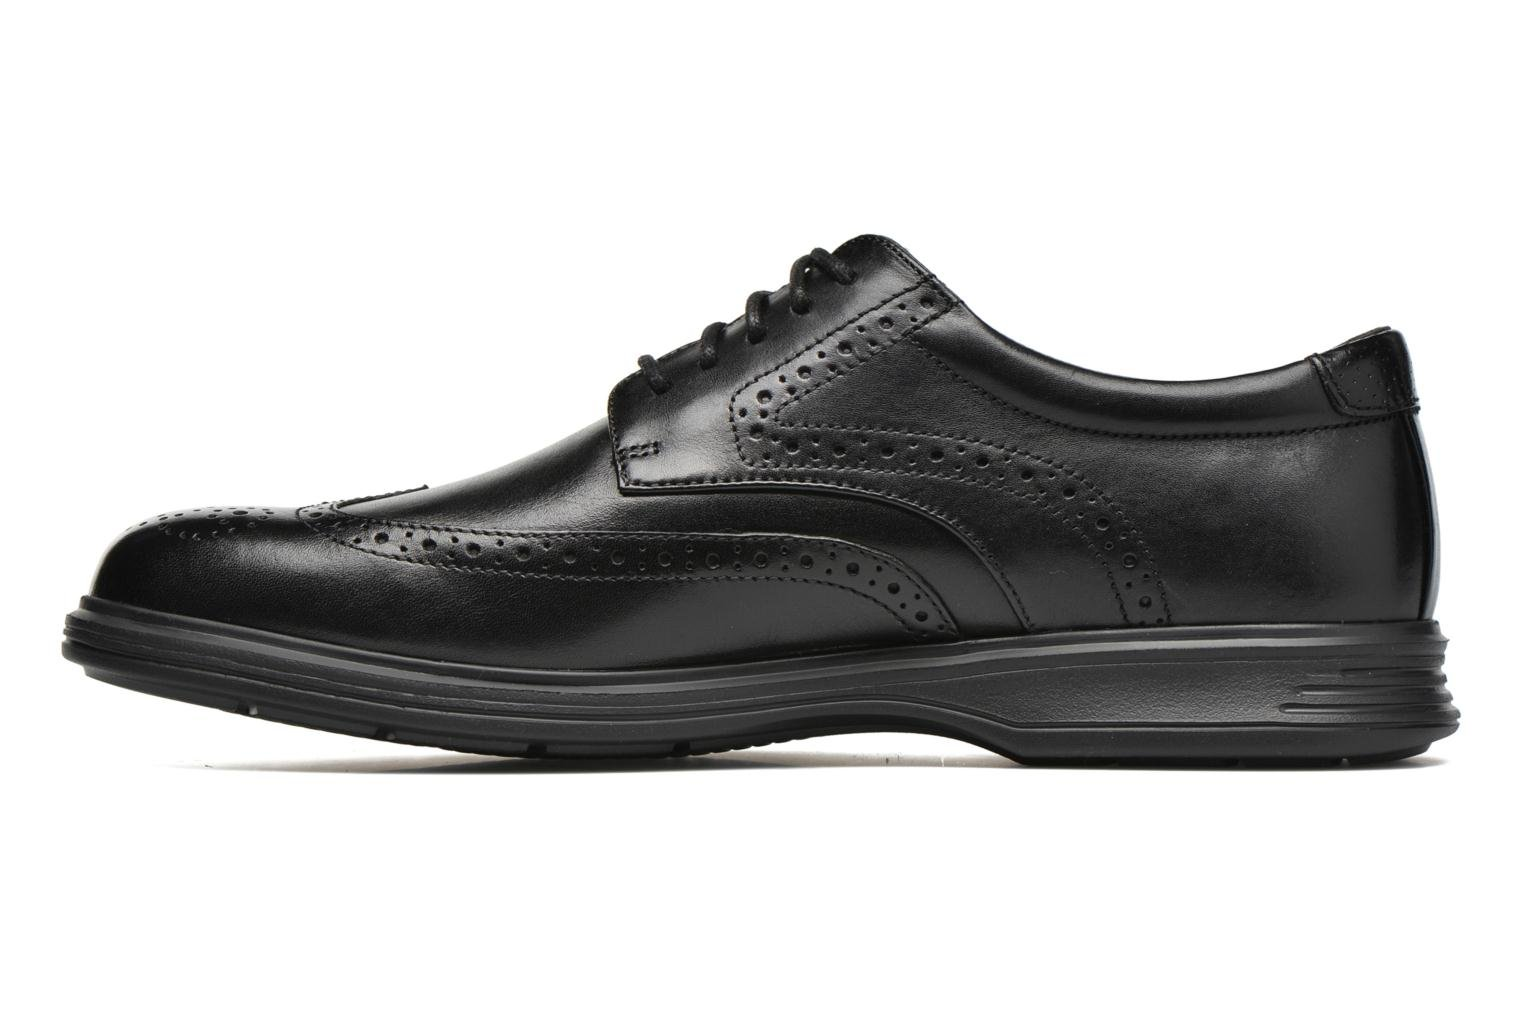 Chaussures à lacets Rockport DP2 Light Wing Tip Noir vue face